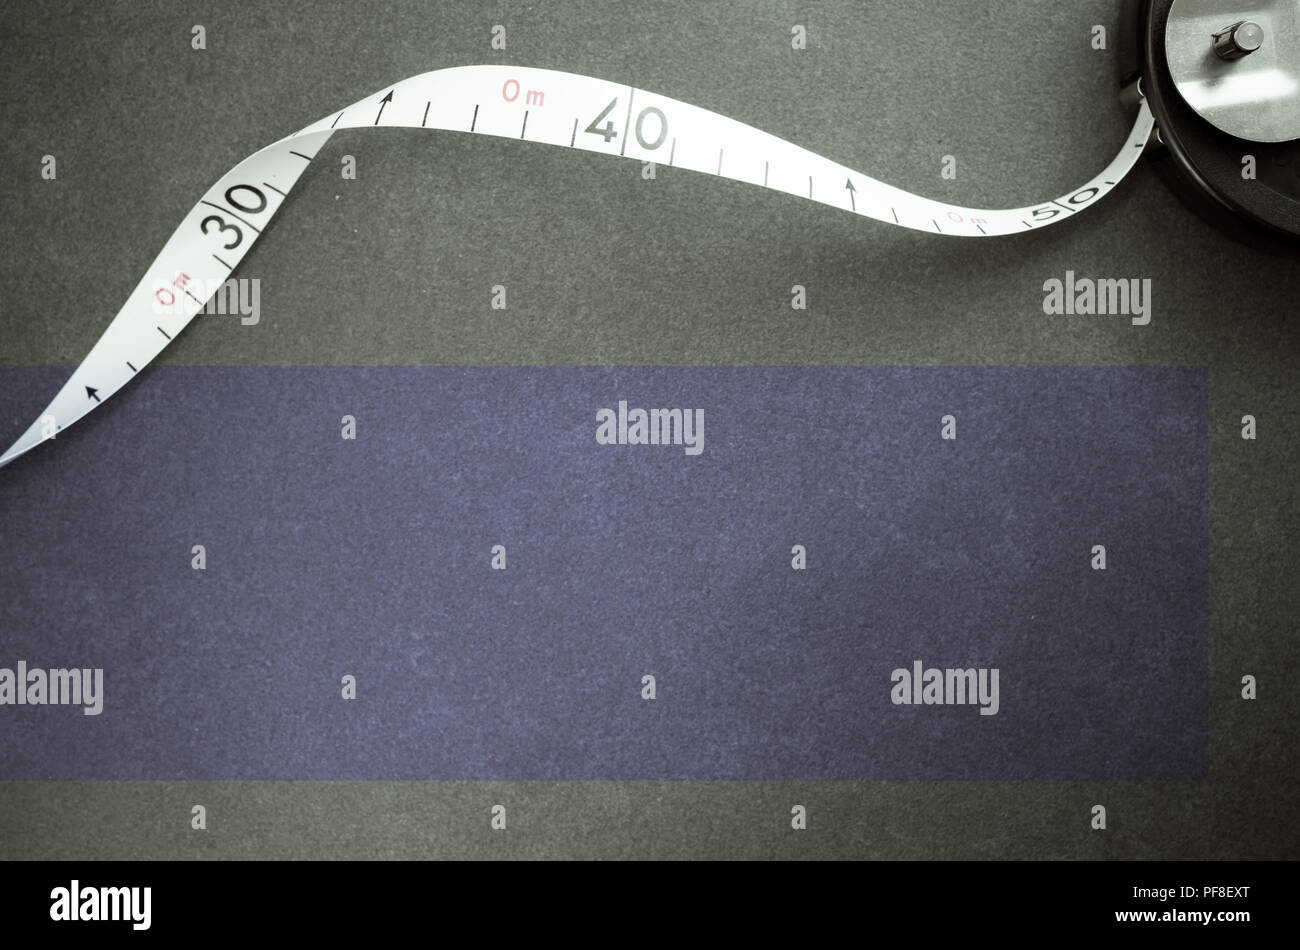 industrial metric measuring tape on a dark worktop surface - top view - Stock Image